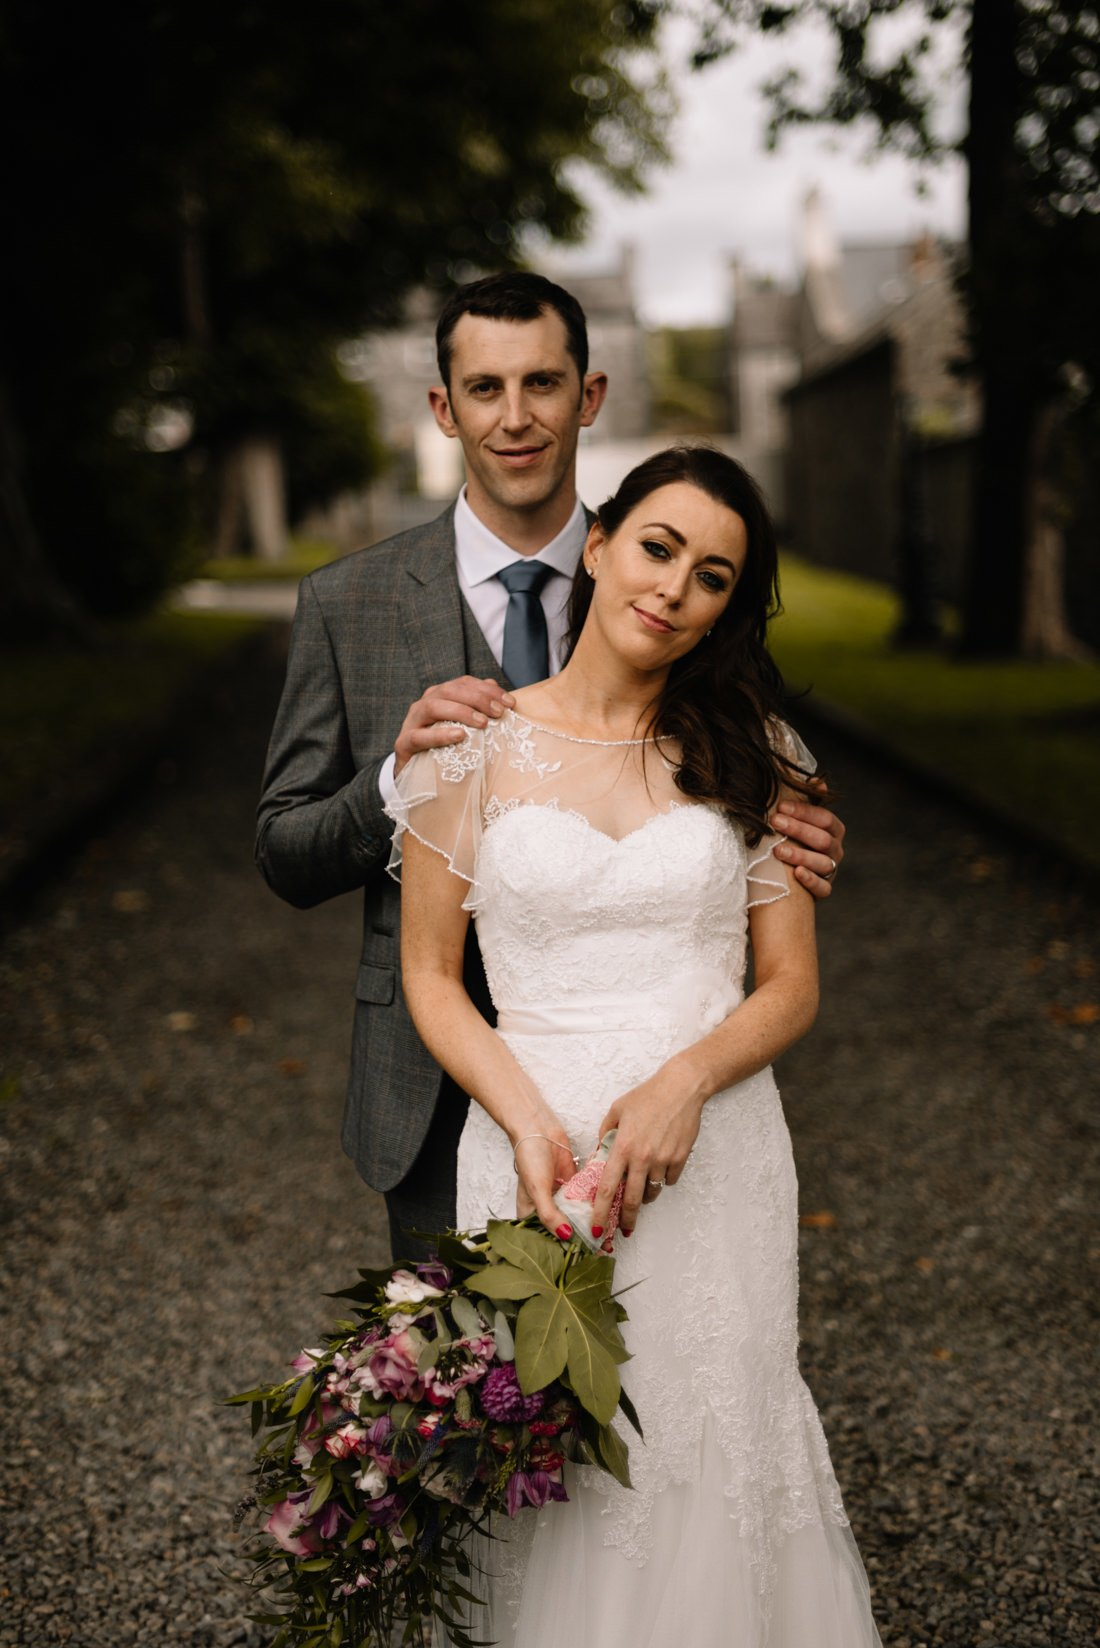 104 conyngham arms hotel wedding photographer slane dublin ireland